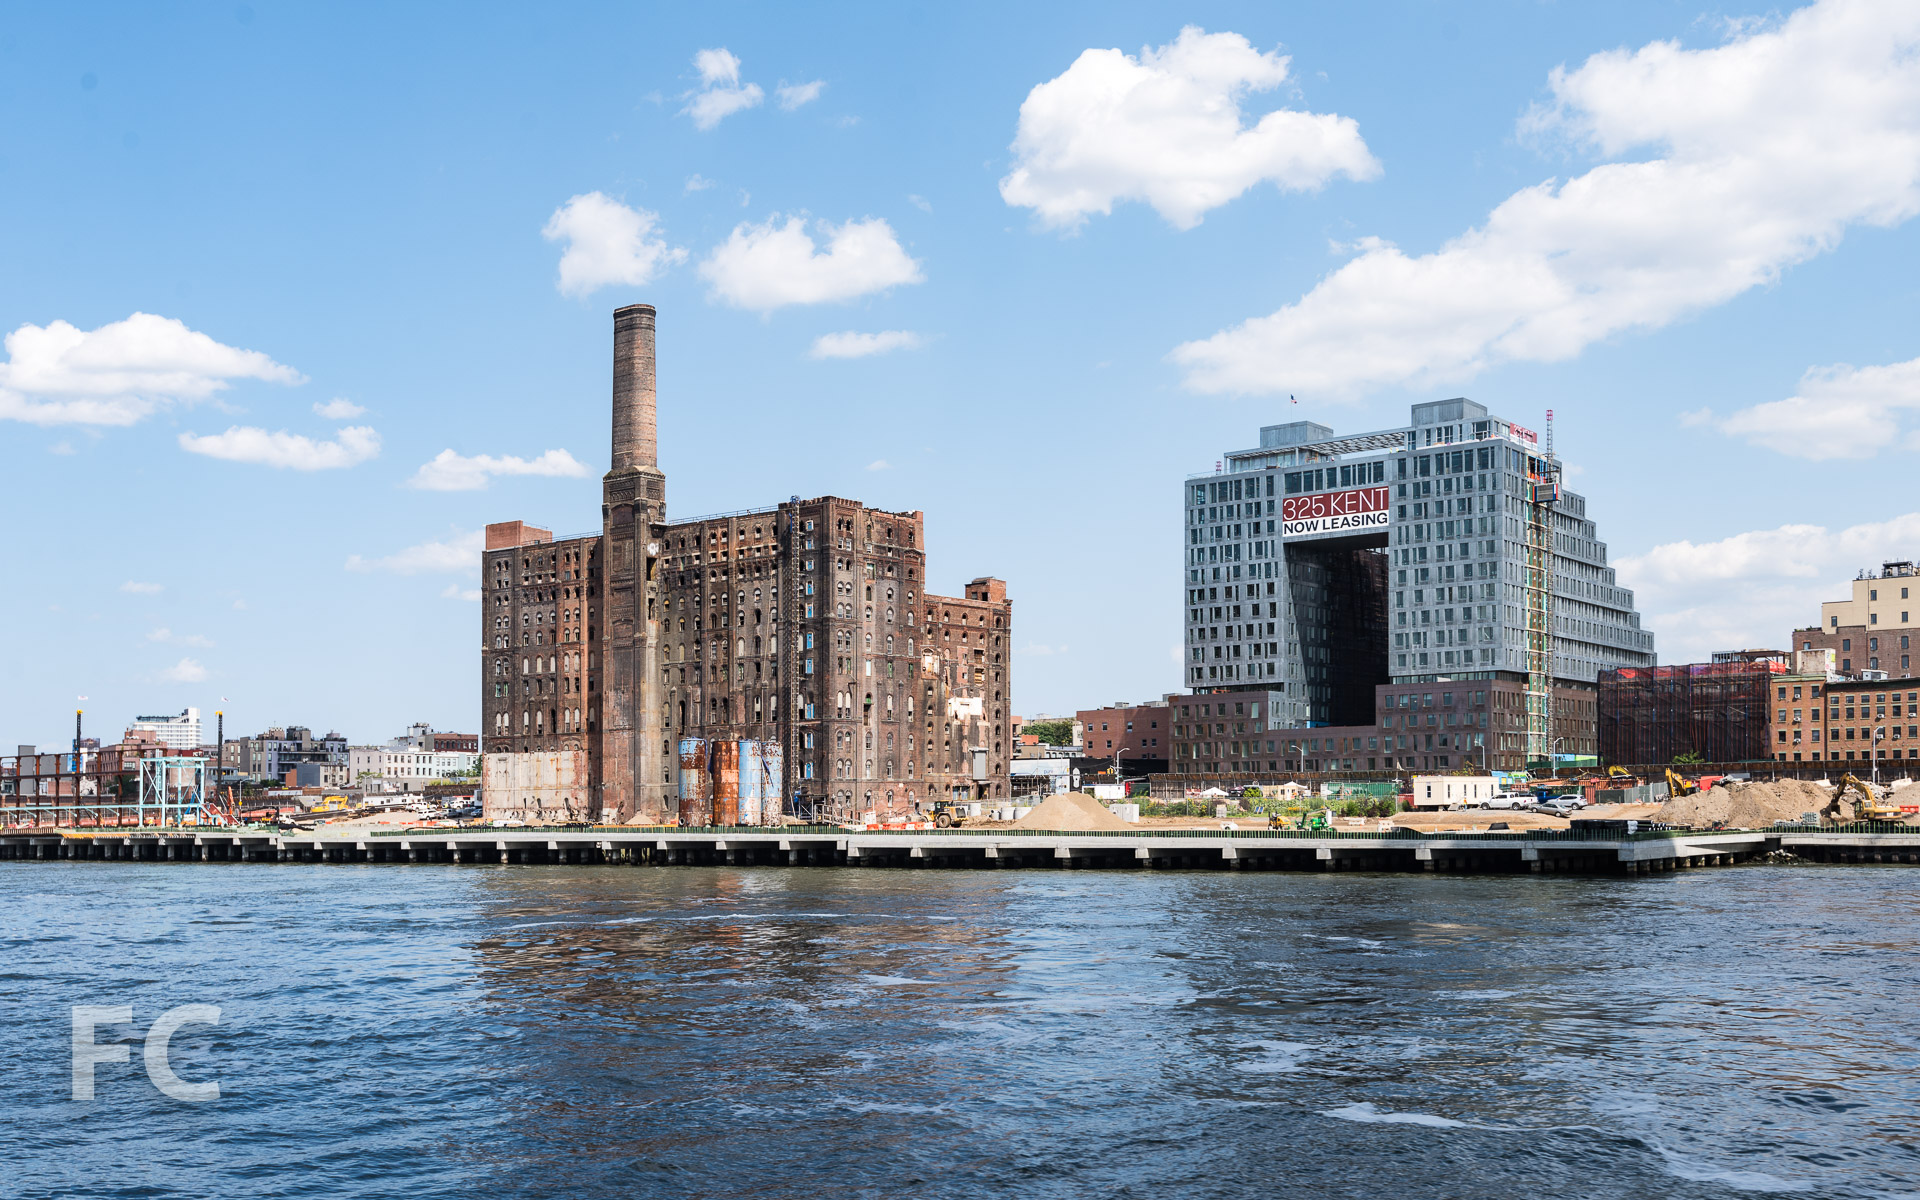 The Domino Sugar Refinery (left) and 325 Kent (right) from the East River.